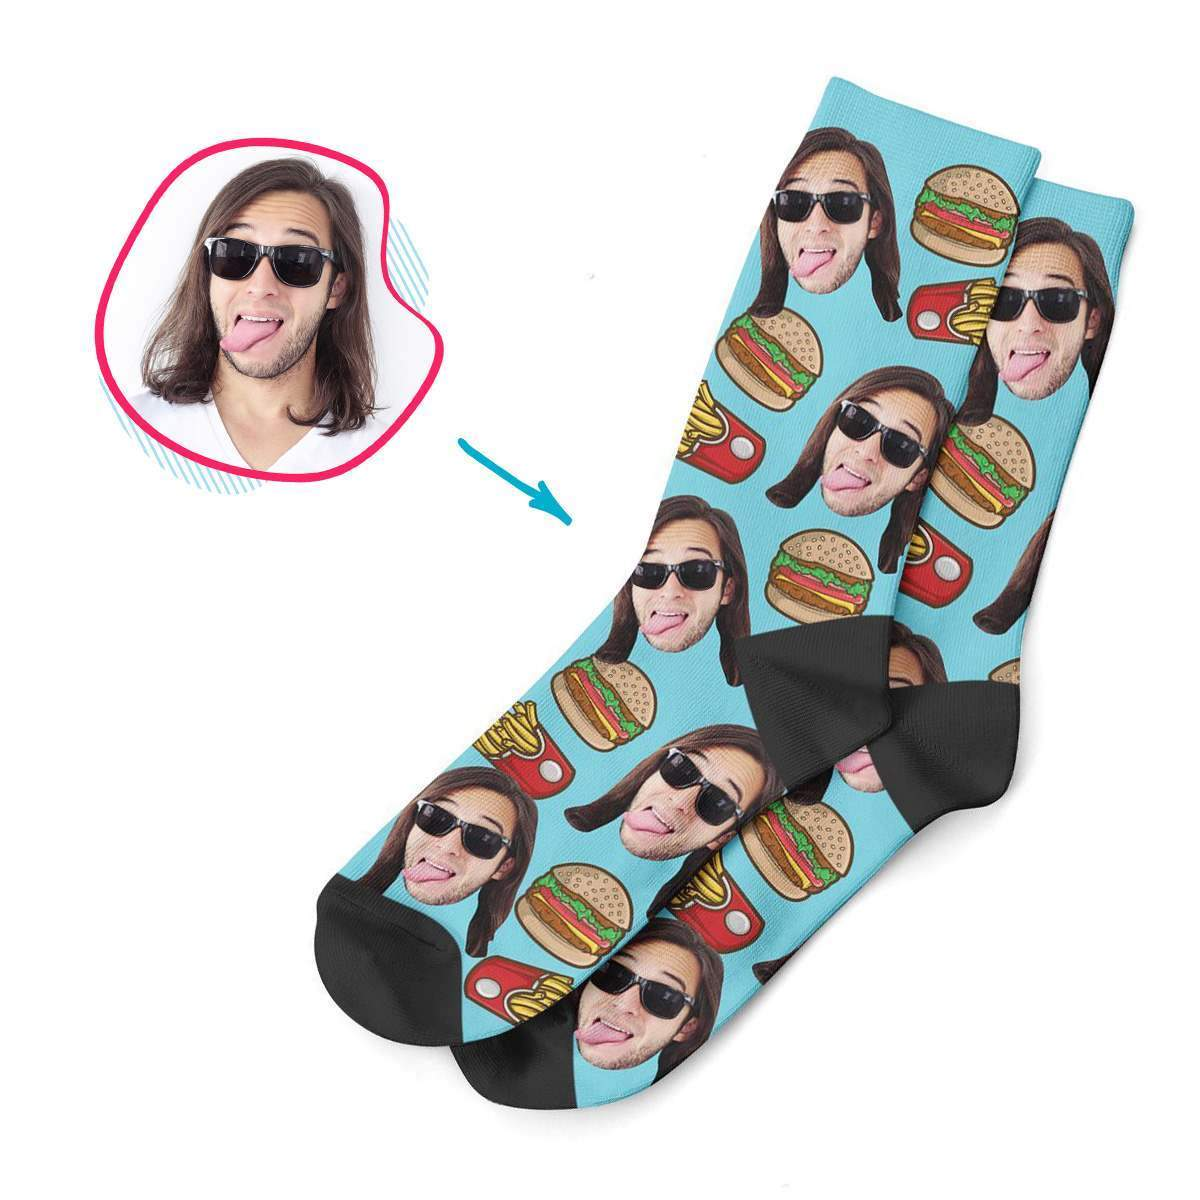 blue Fastfood socks personalized with photo of face printed on them